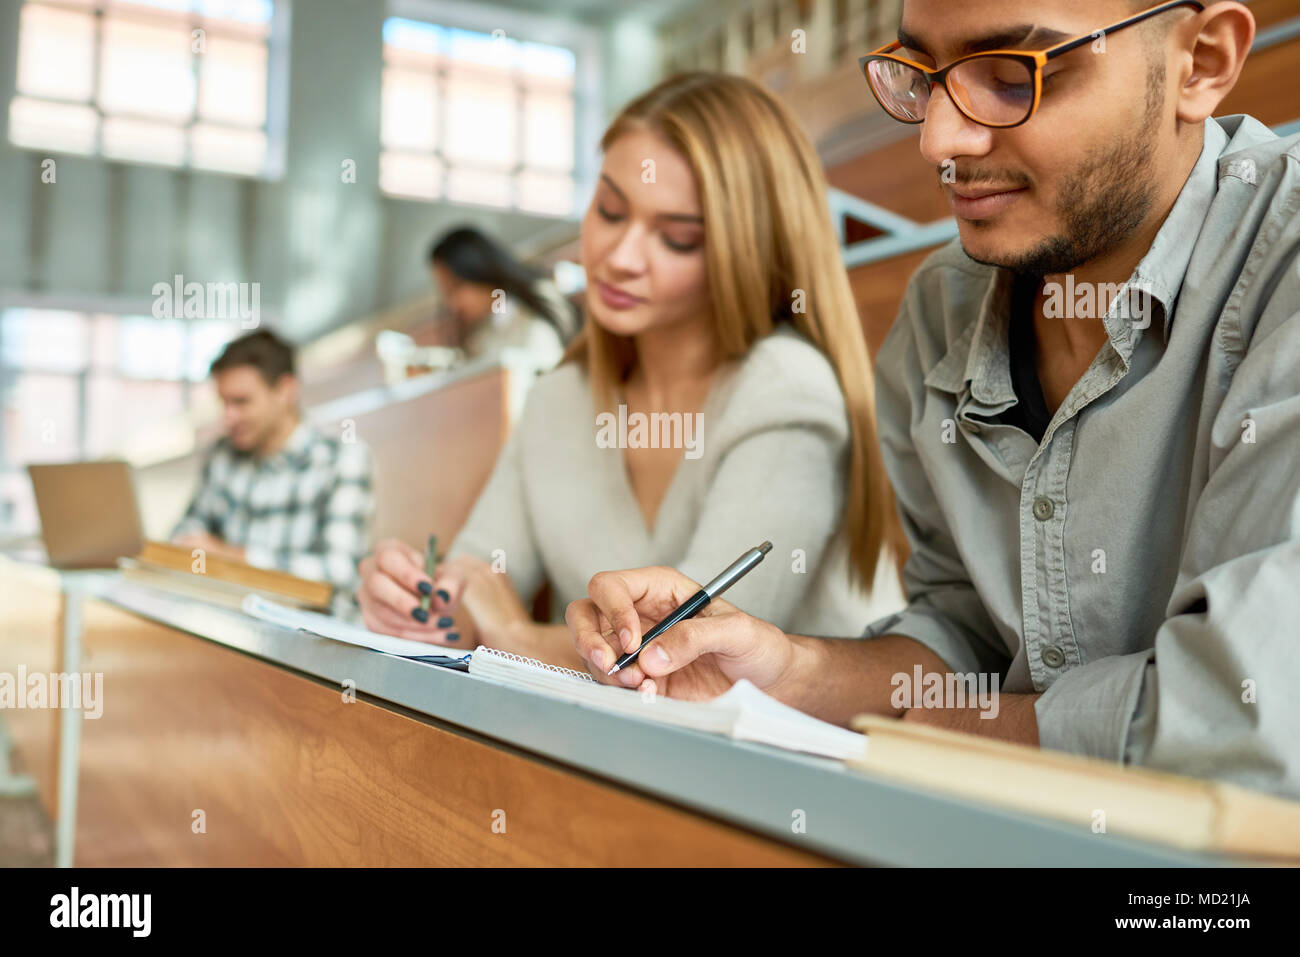 Students at Lecture in University - Stock Image